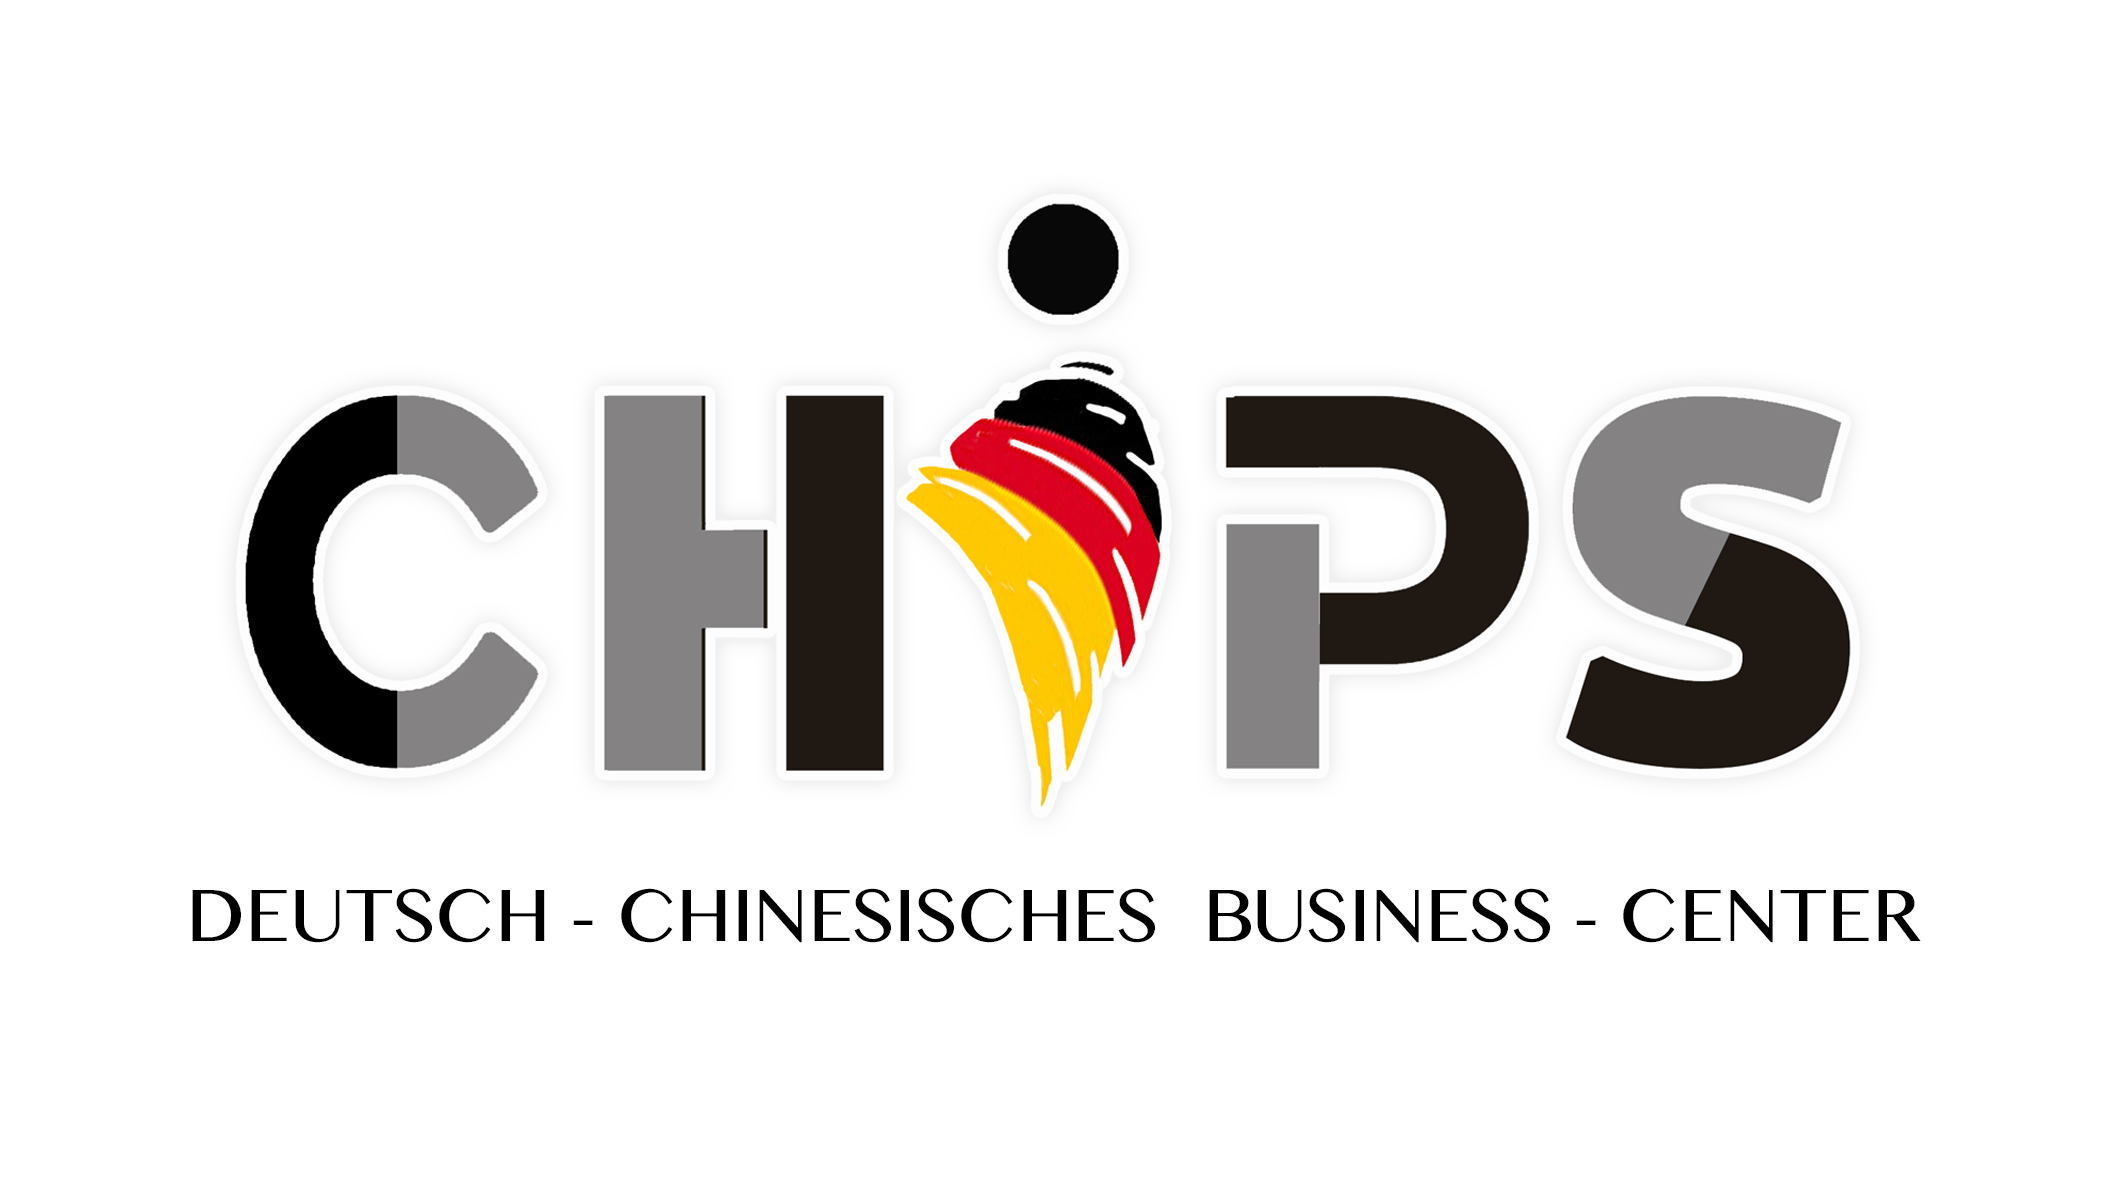 https://chips.gmbh